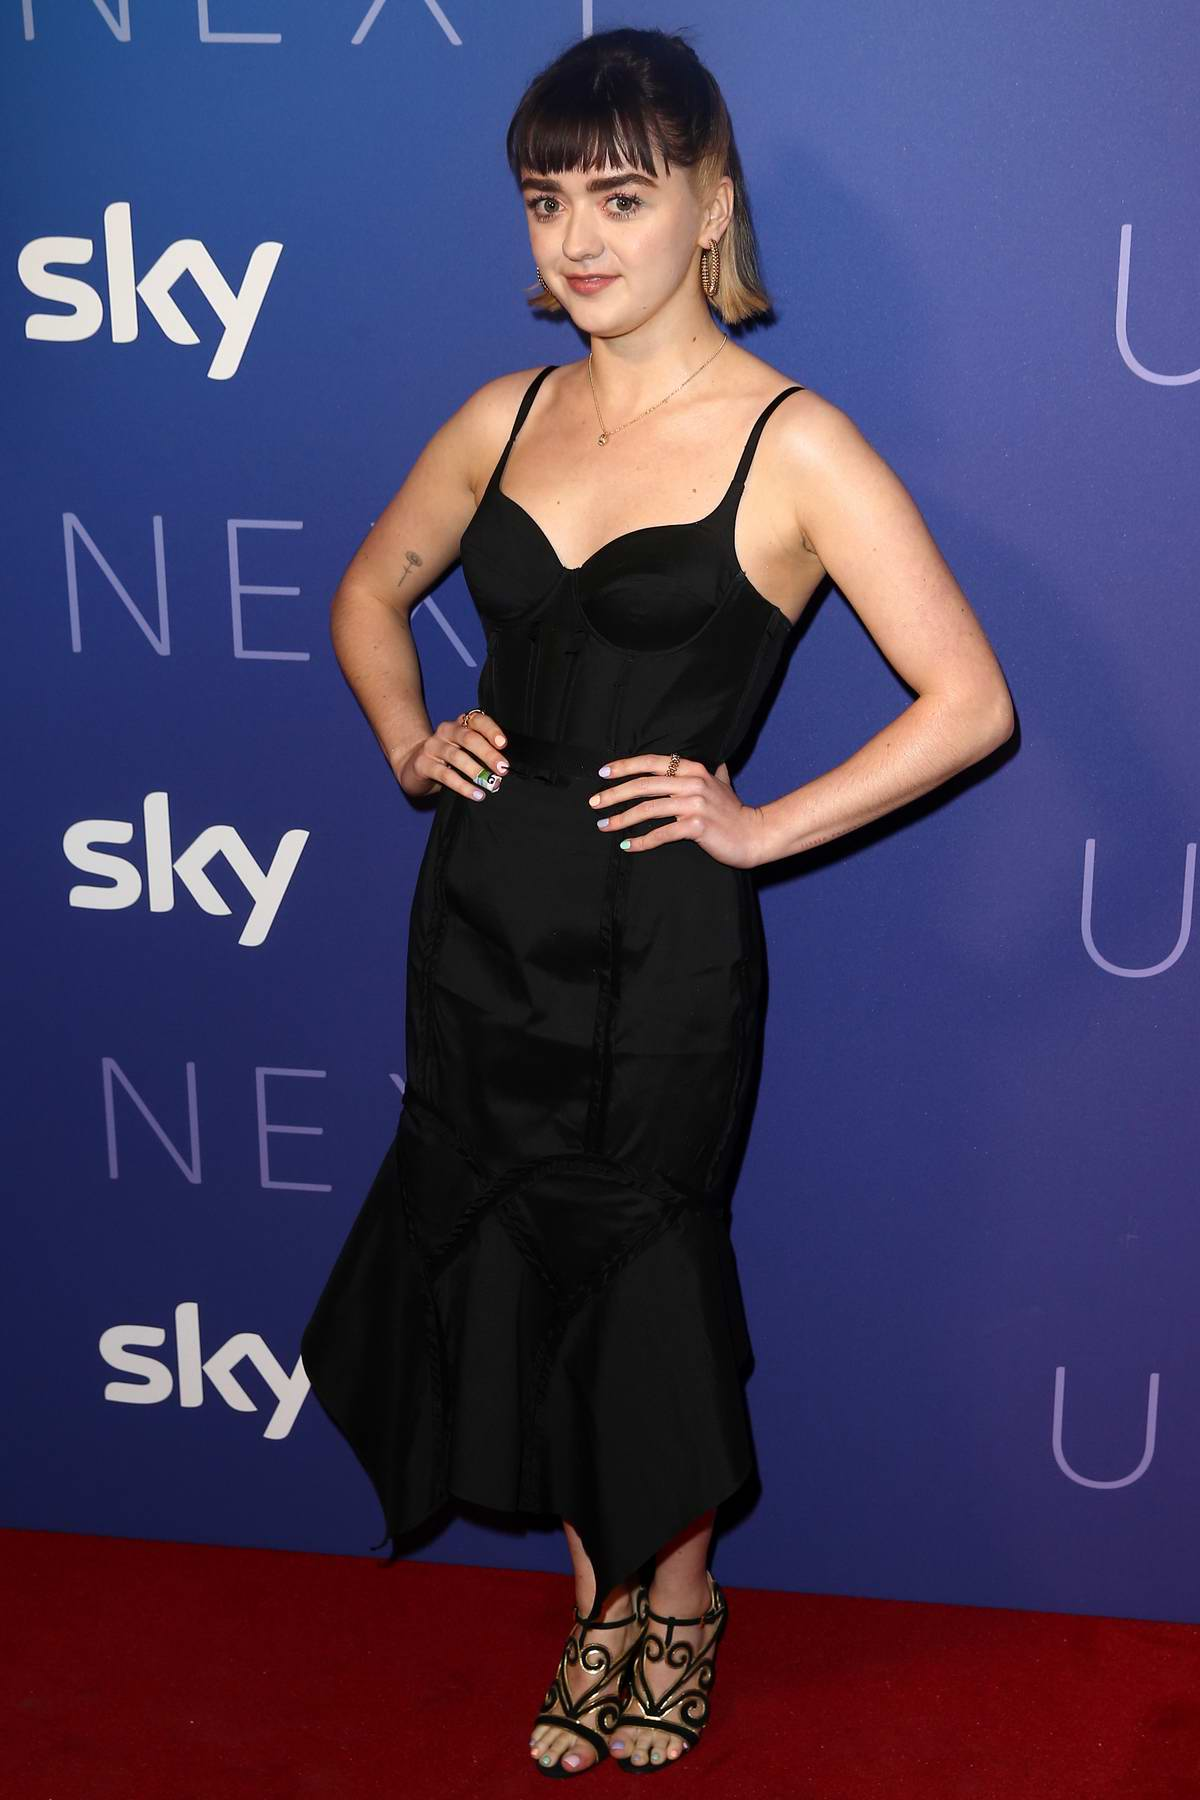 Maisie Williams attends Sky Up Next 2020 at Tate Modern in London, UK